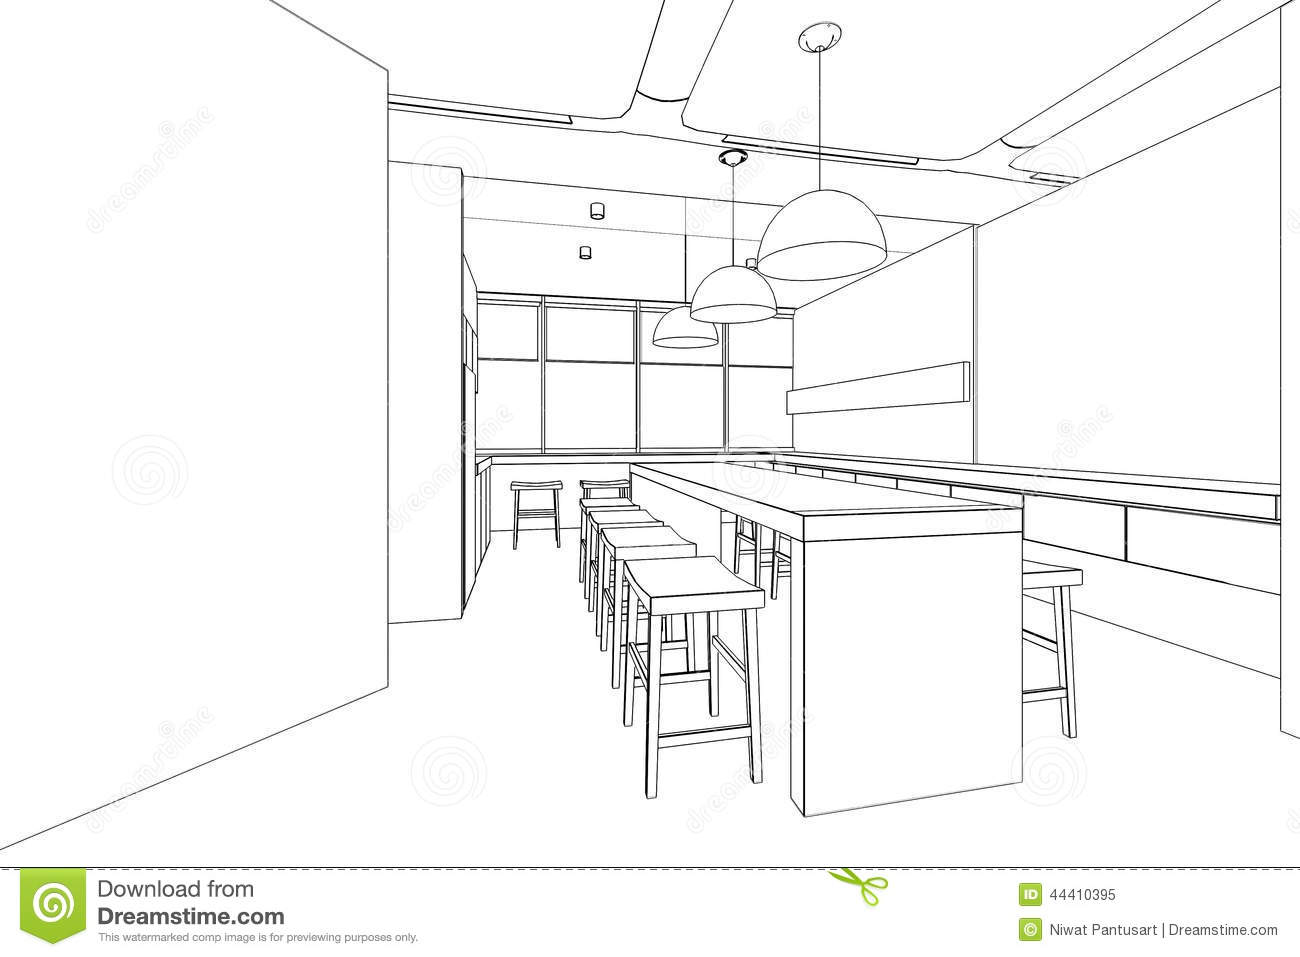 Outline Sketch Of A Interior Pantry Area Stock Illustration